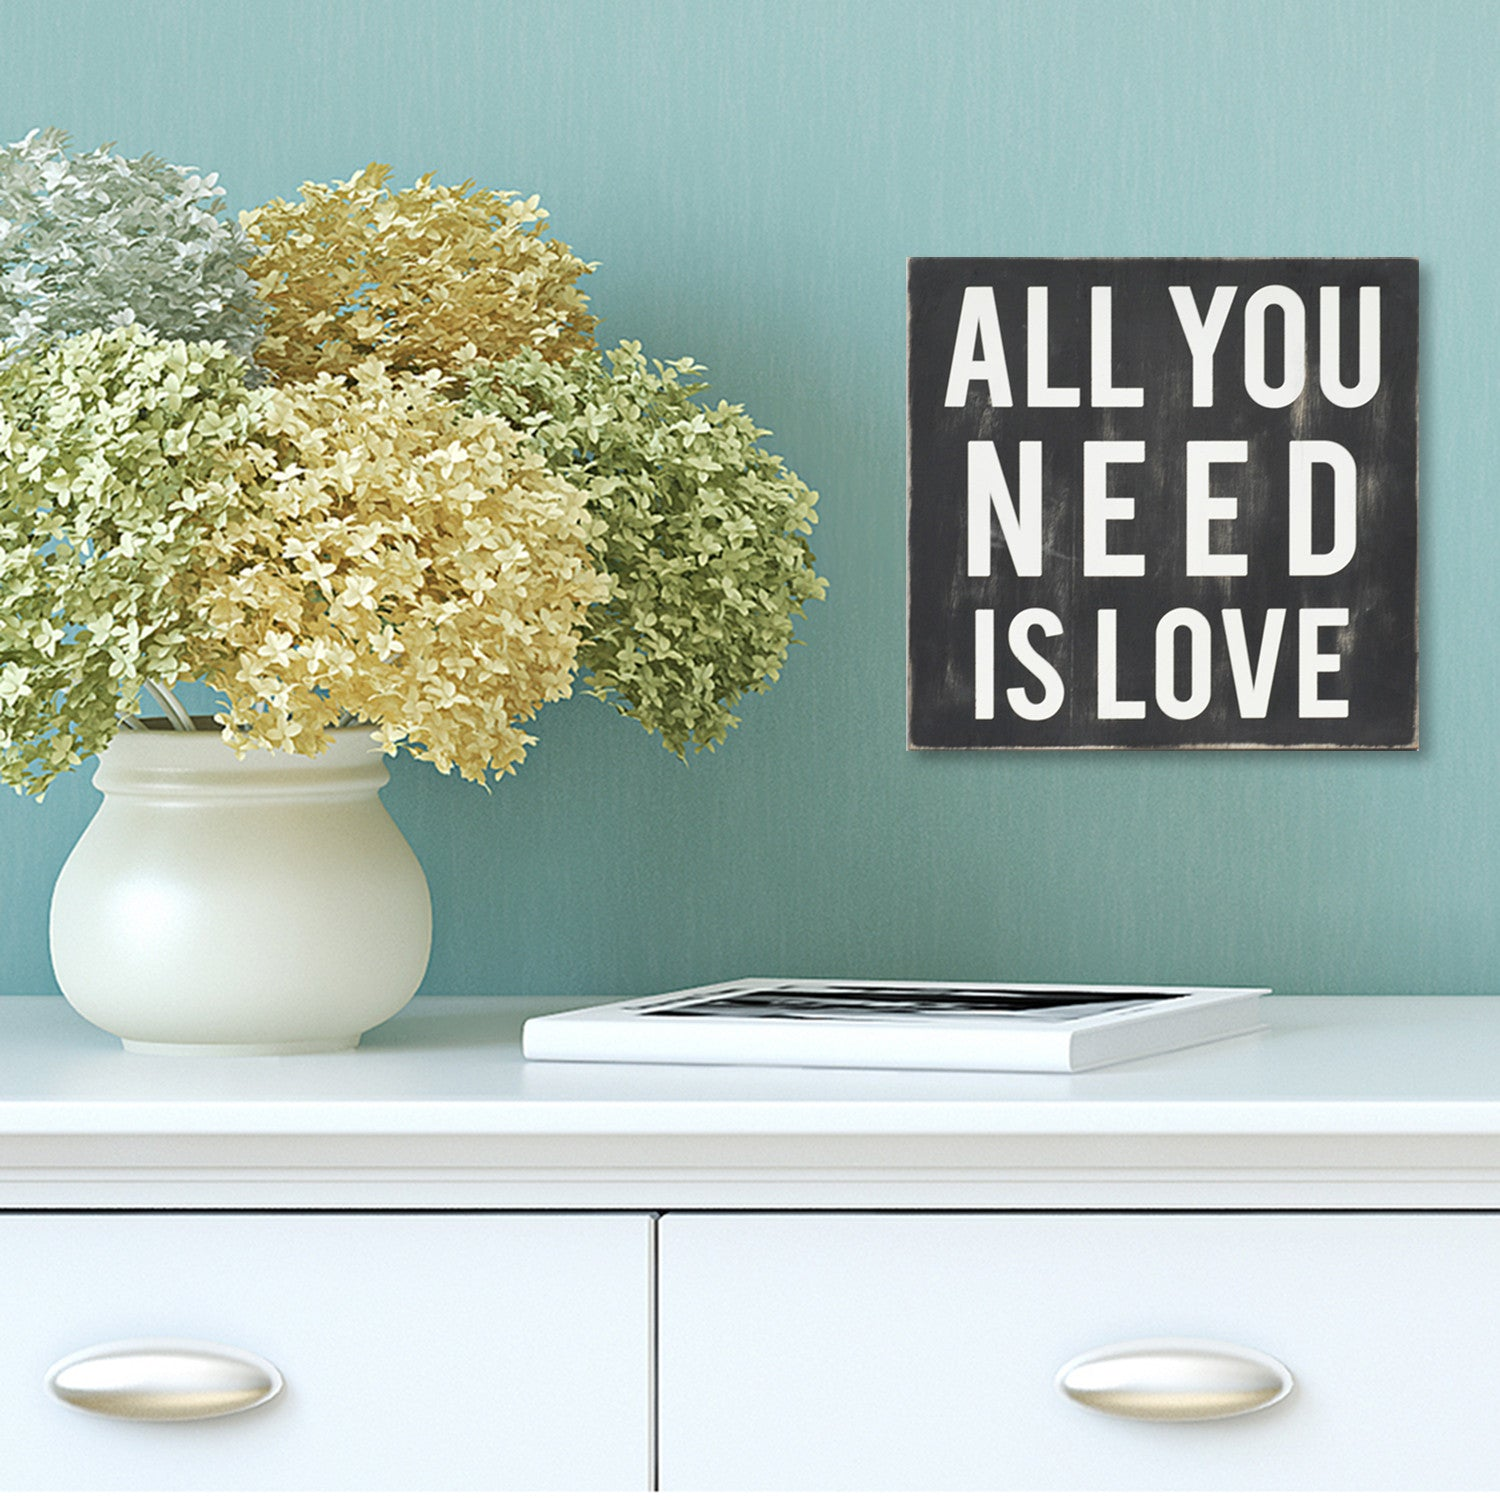 Wall Decor All You Need Is Love : Stratton home d?cor all you need is love wall art